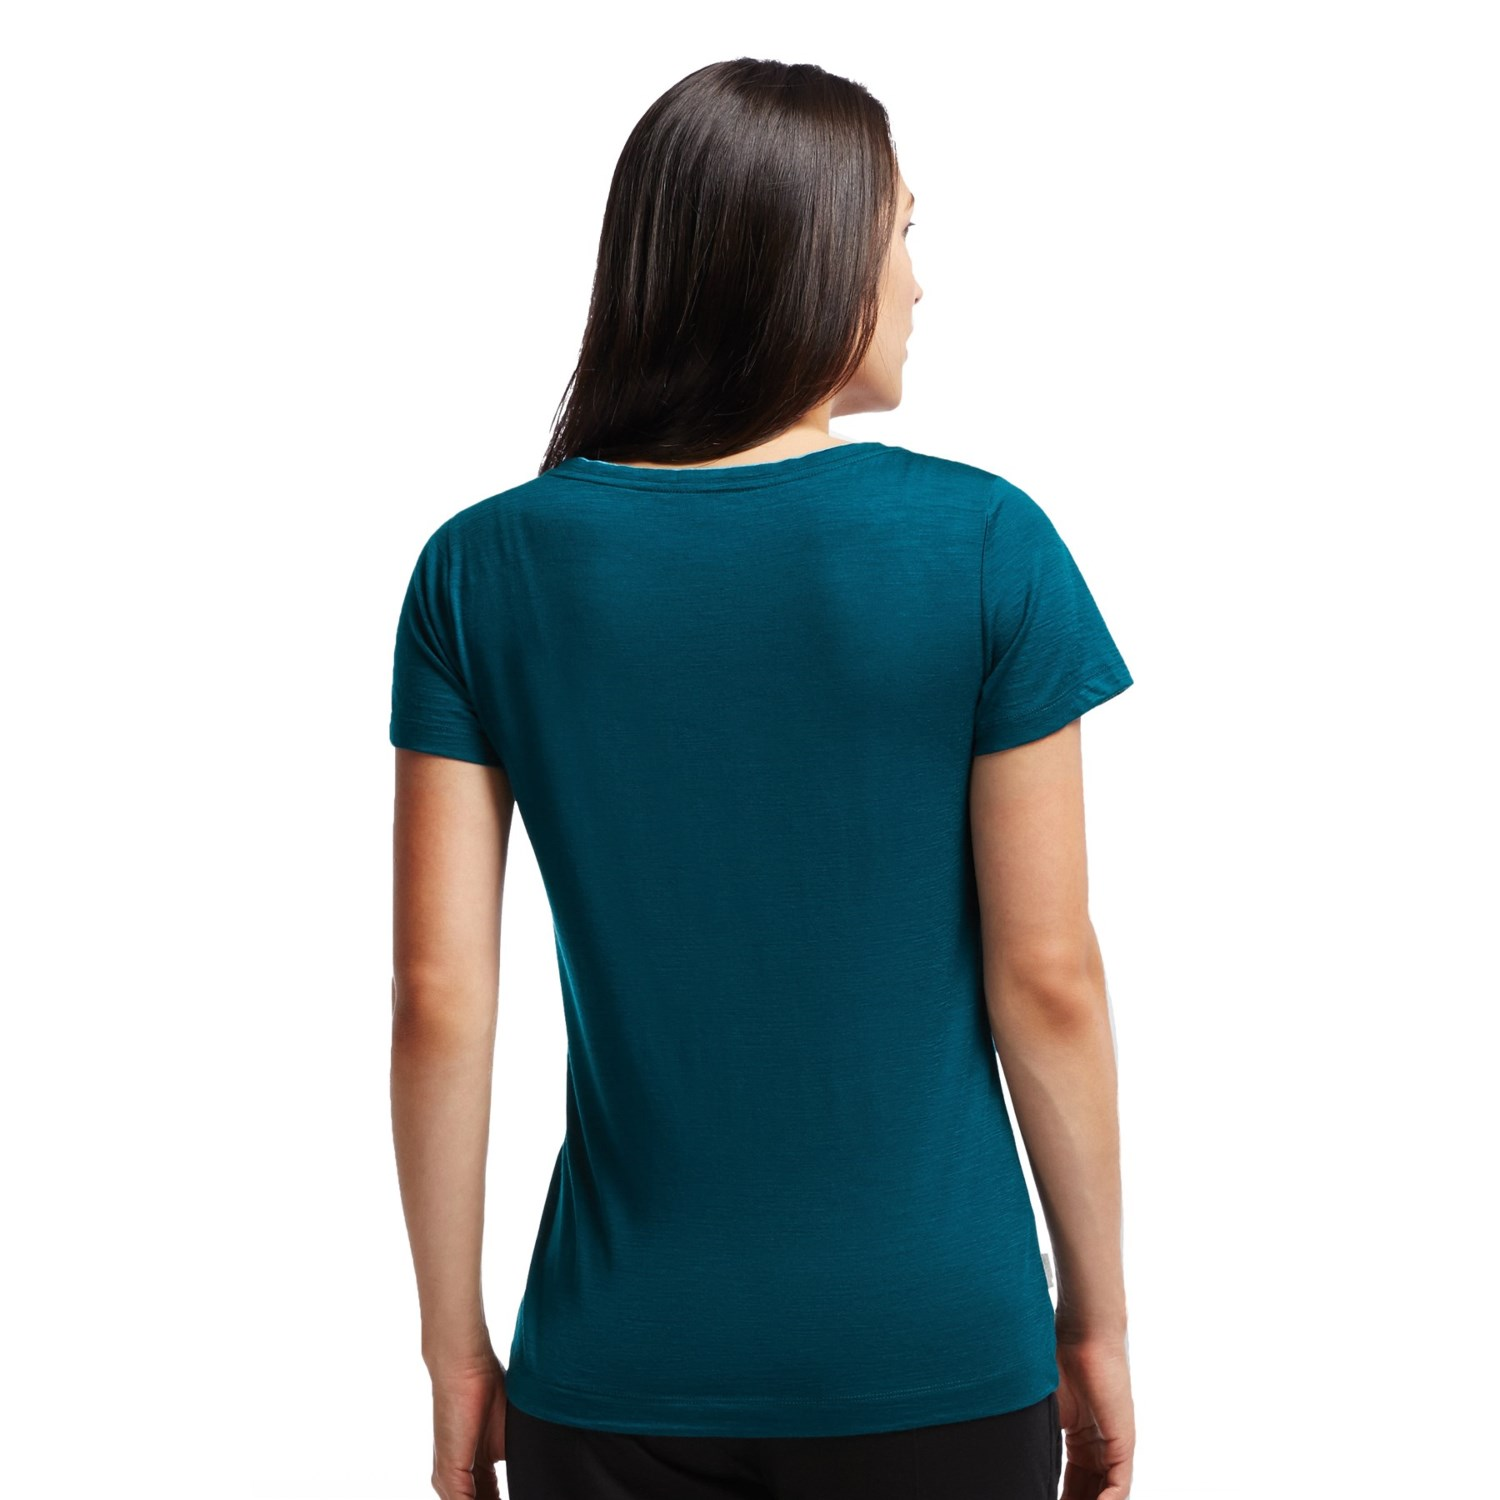 Icebreaker harmony t shirt for women 8090r save 65 for Merino wool shirt womens